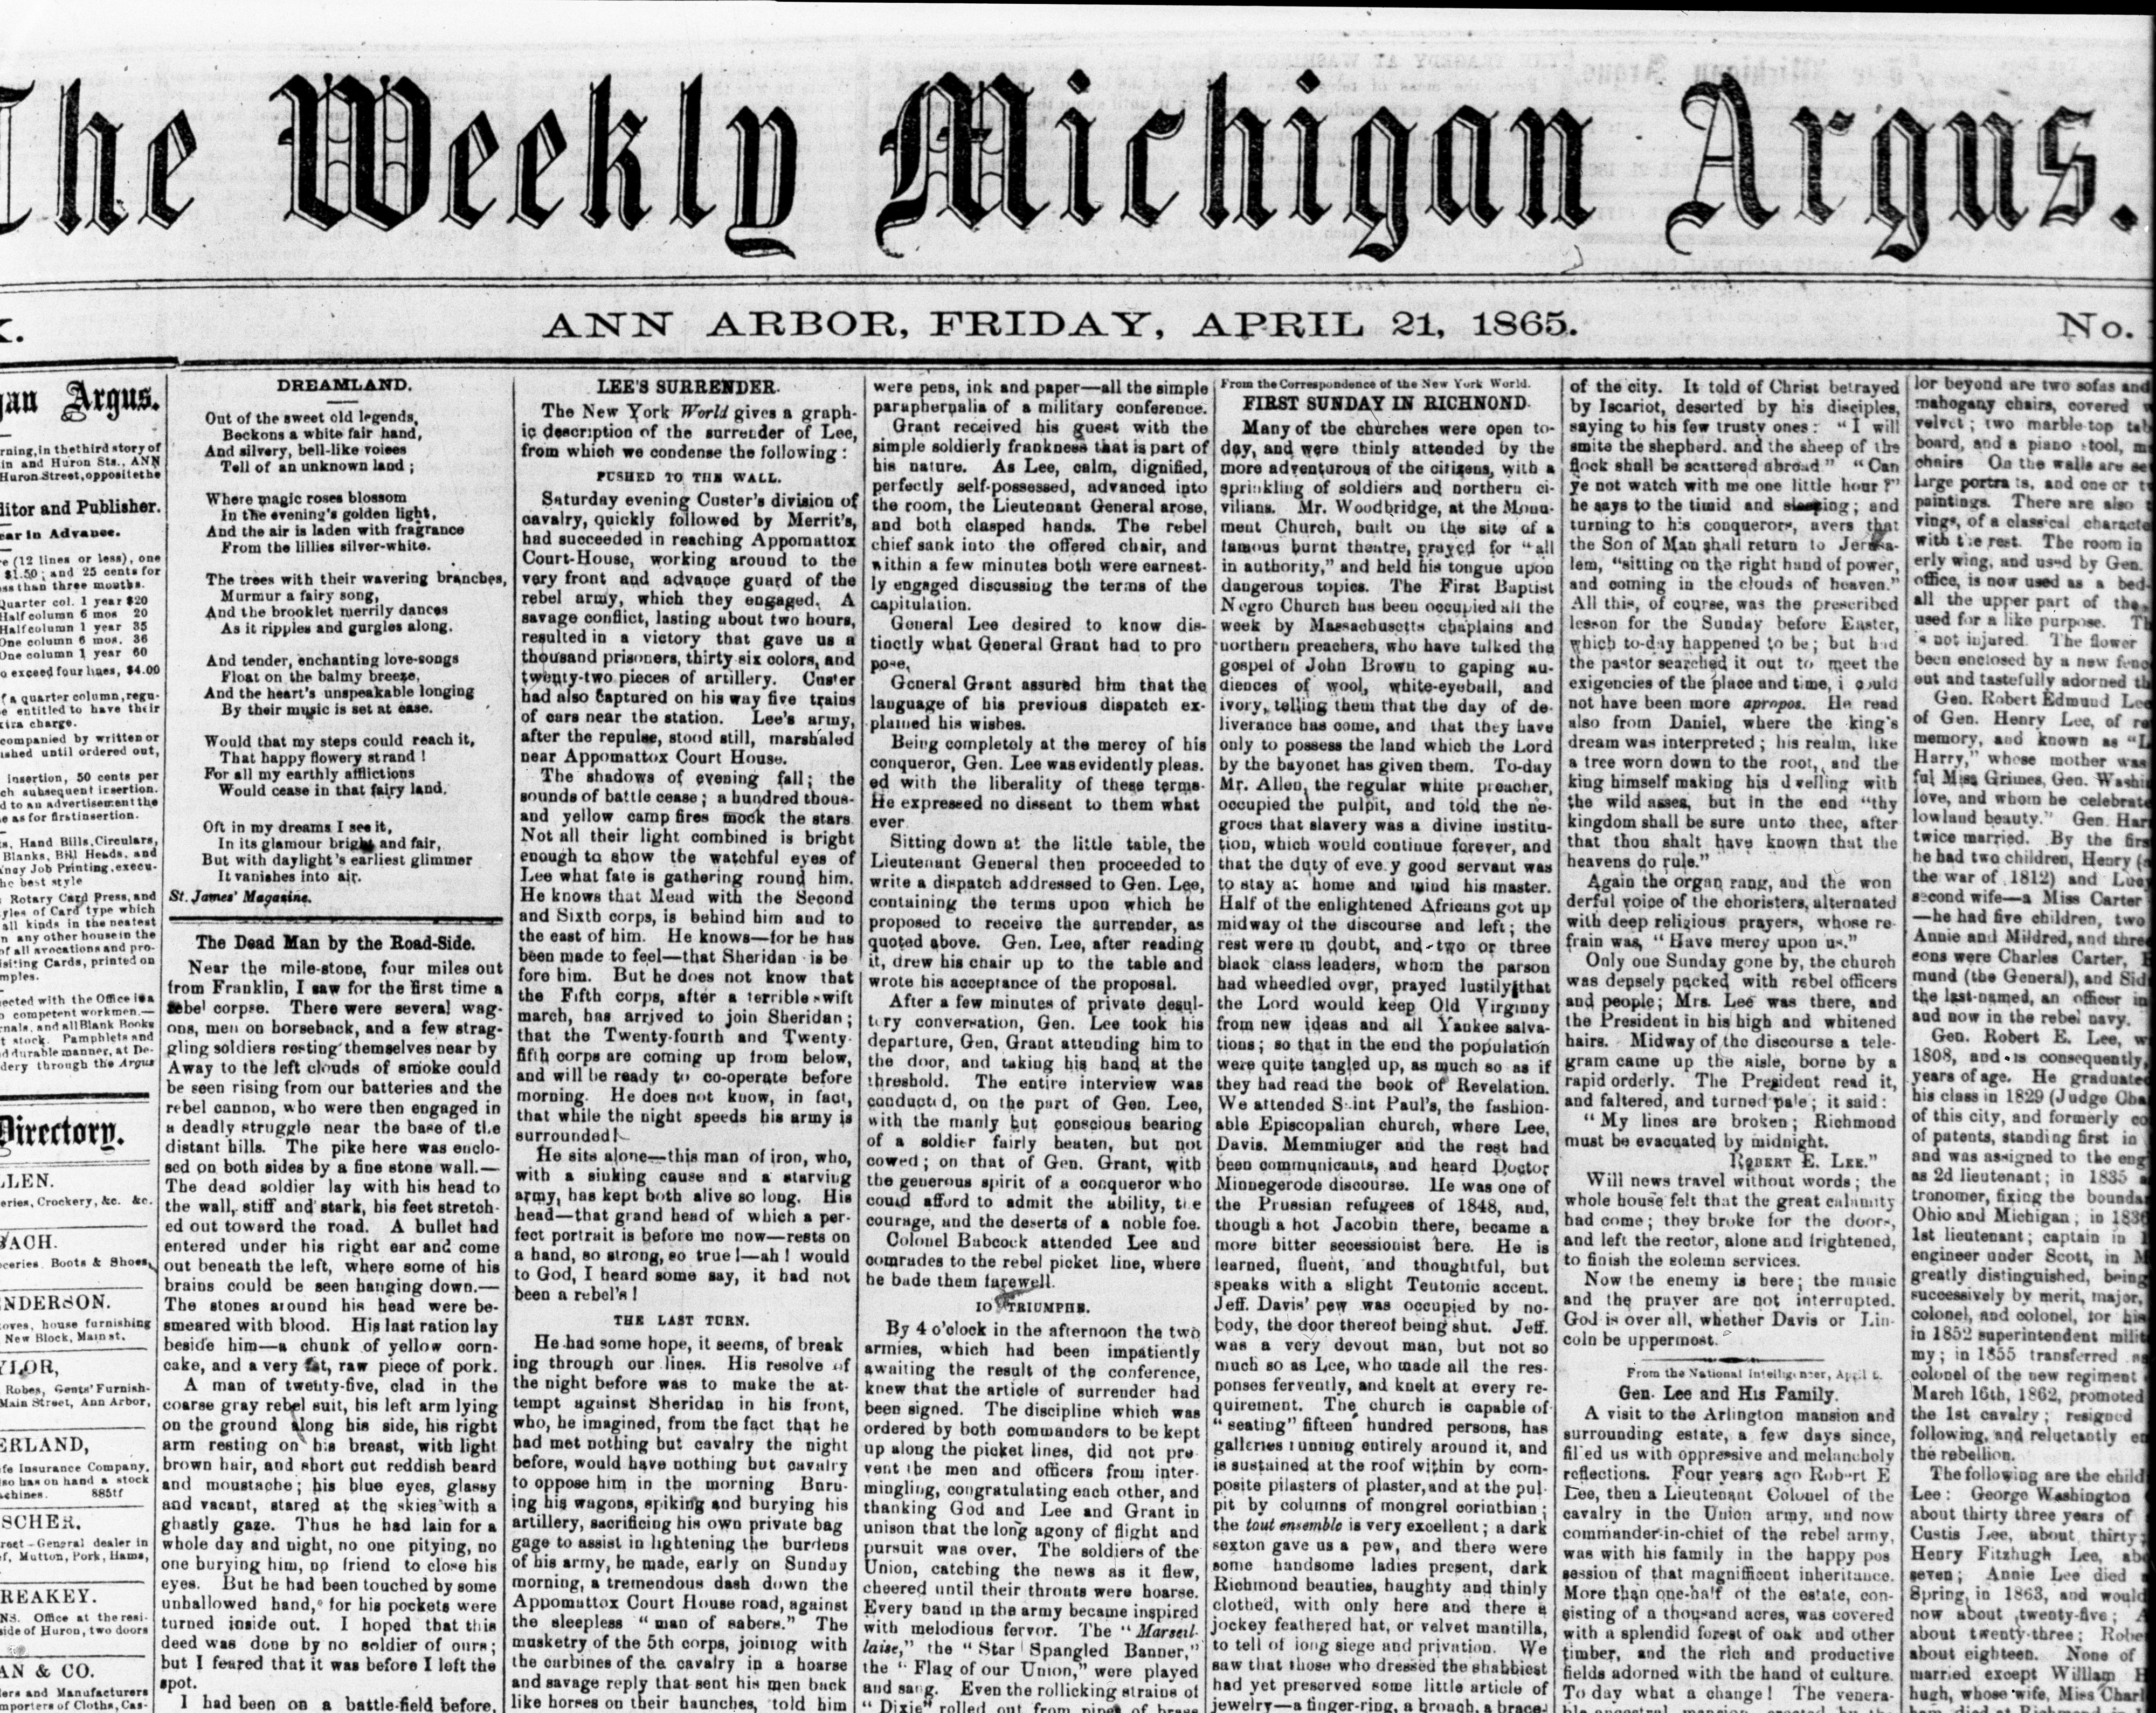 Front page of the April 21, 1865 issue of the Weekly Michigan Argus with article about Gen. Robert E. Lee's surrender at Appomattox, October 1966 image